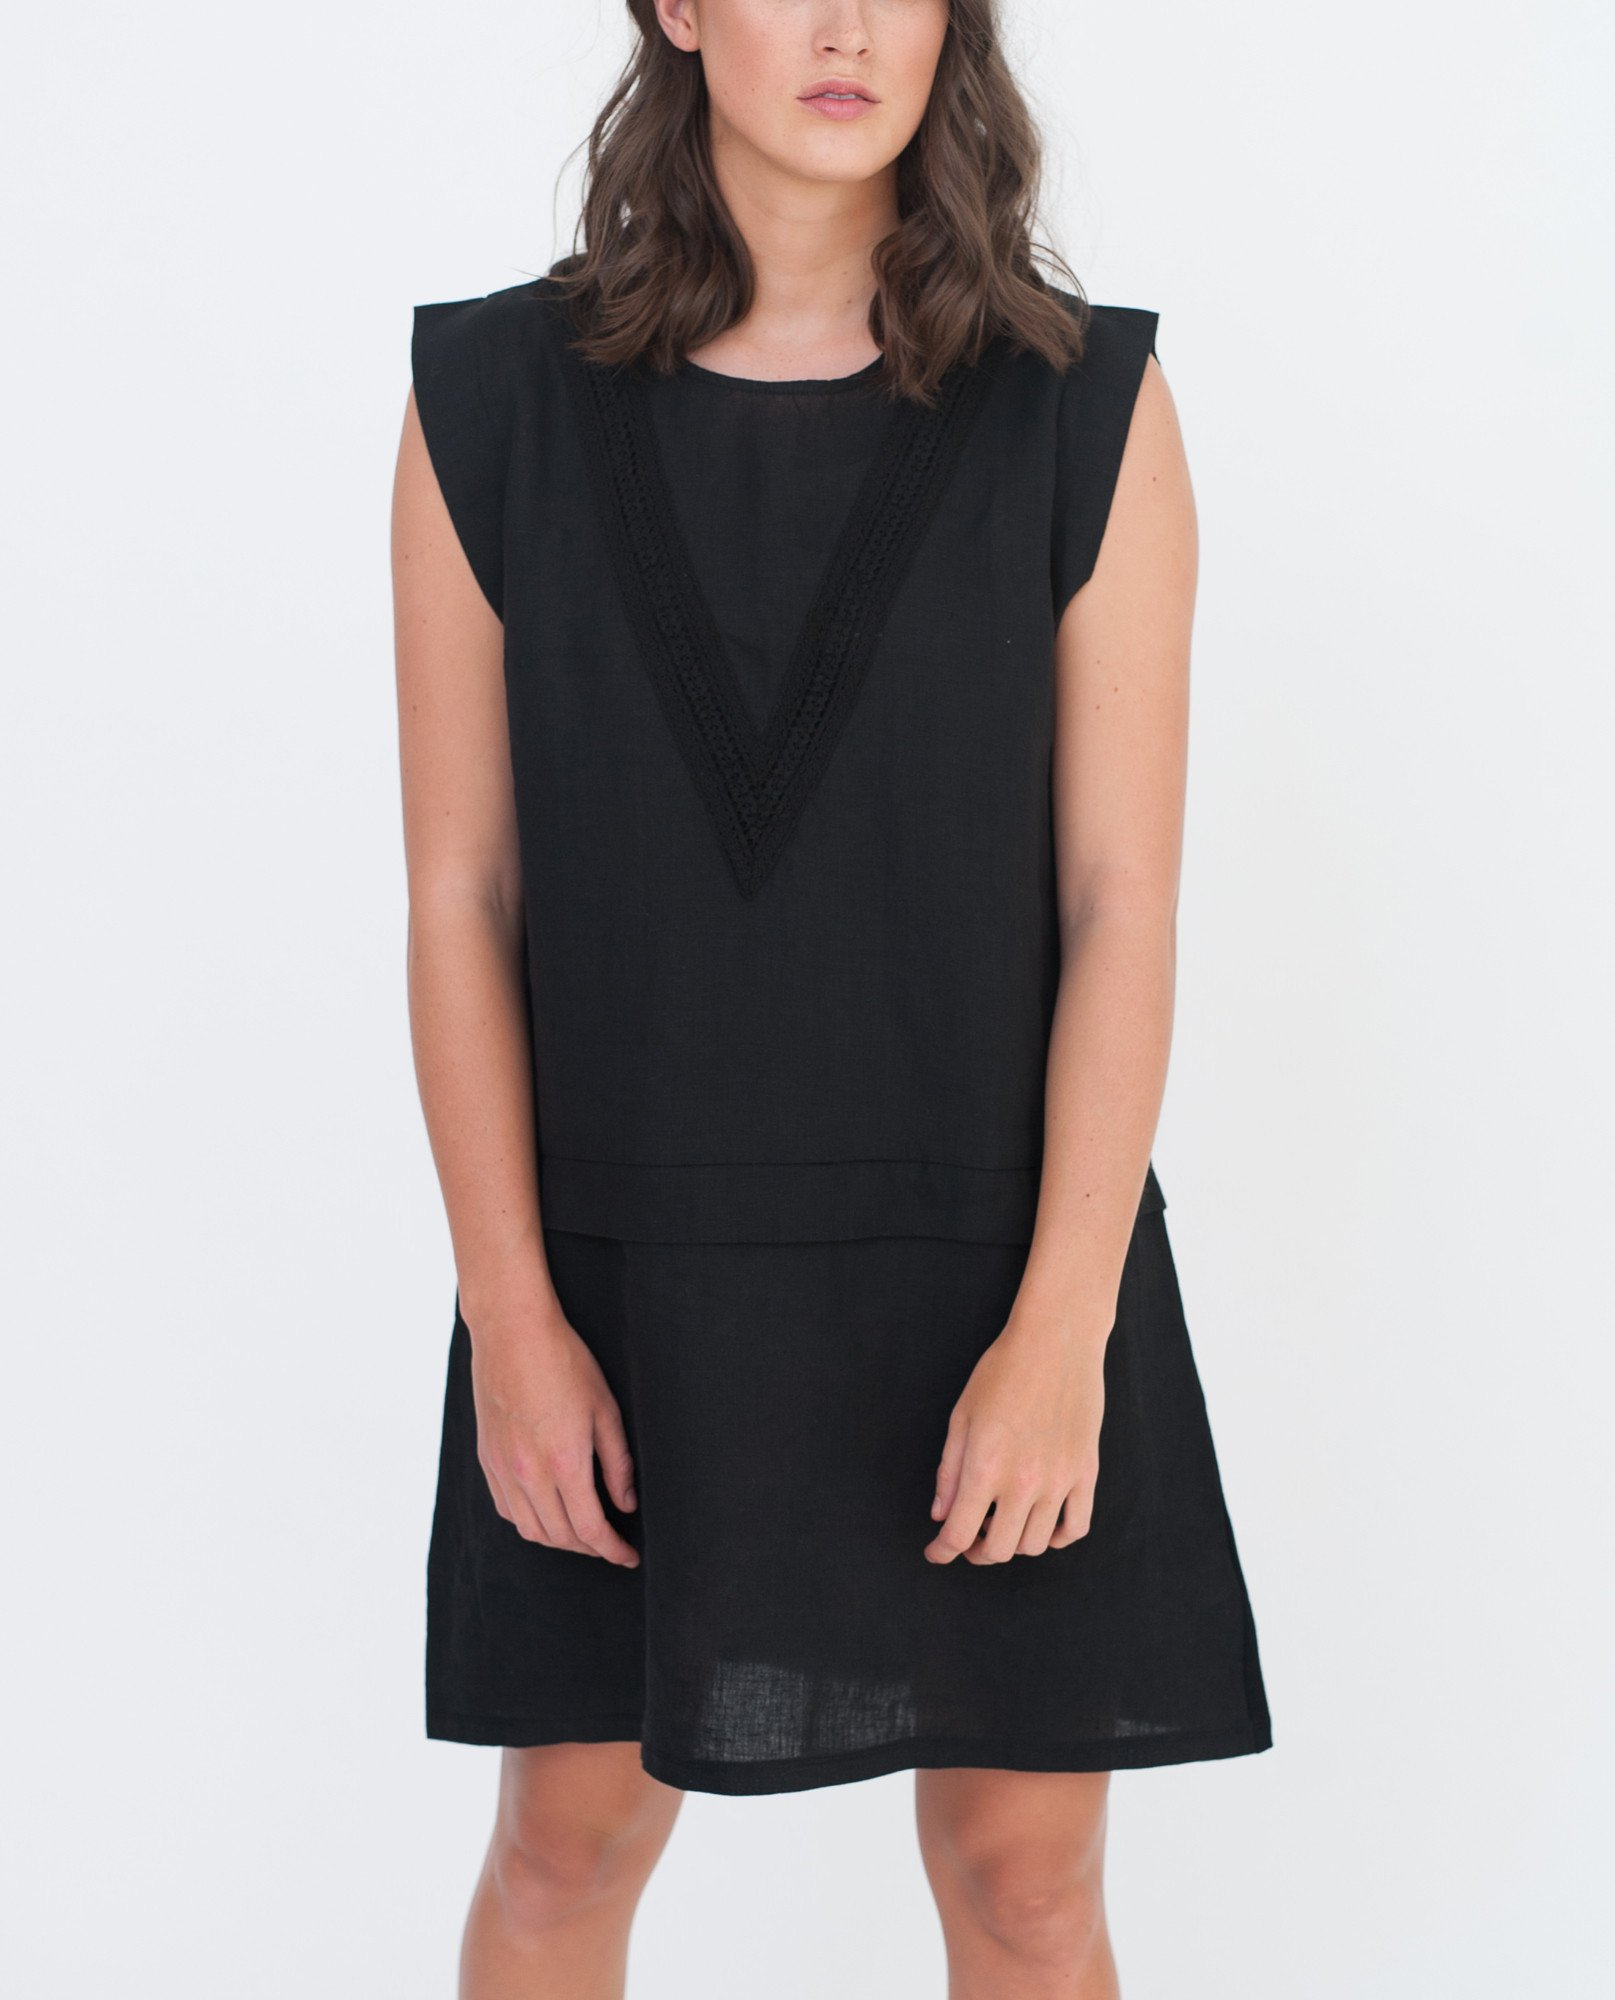 HADLEY Organic Cotton And Linen Dress In Black from Beaumont Organic